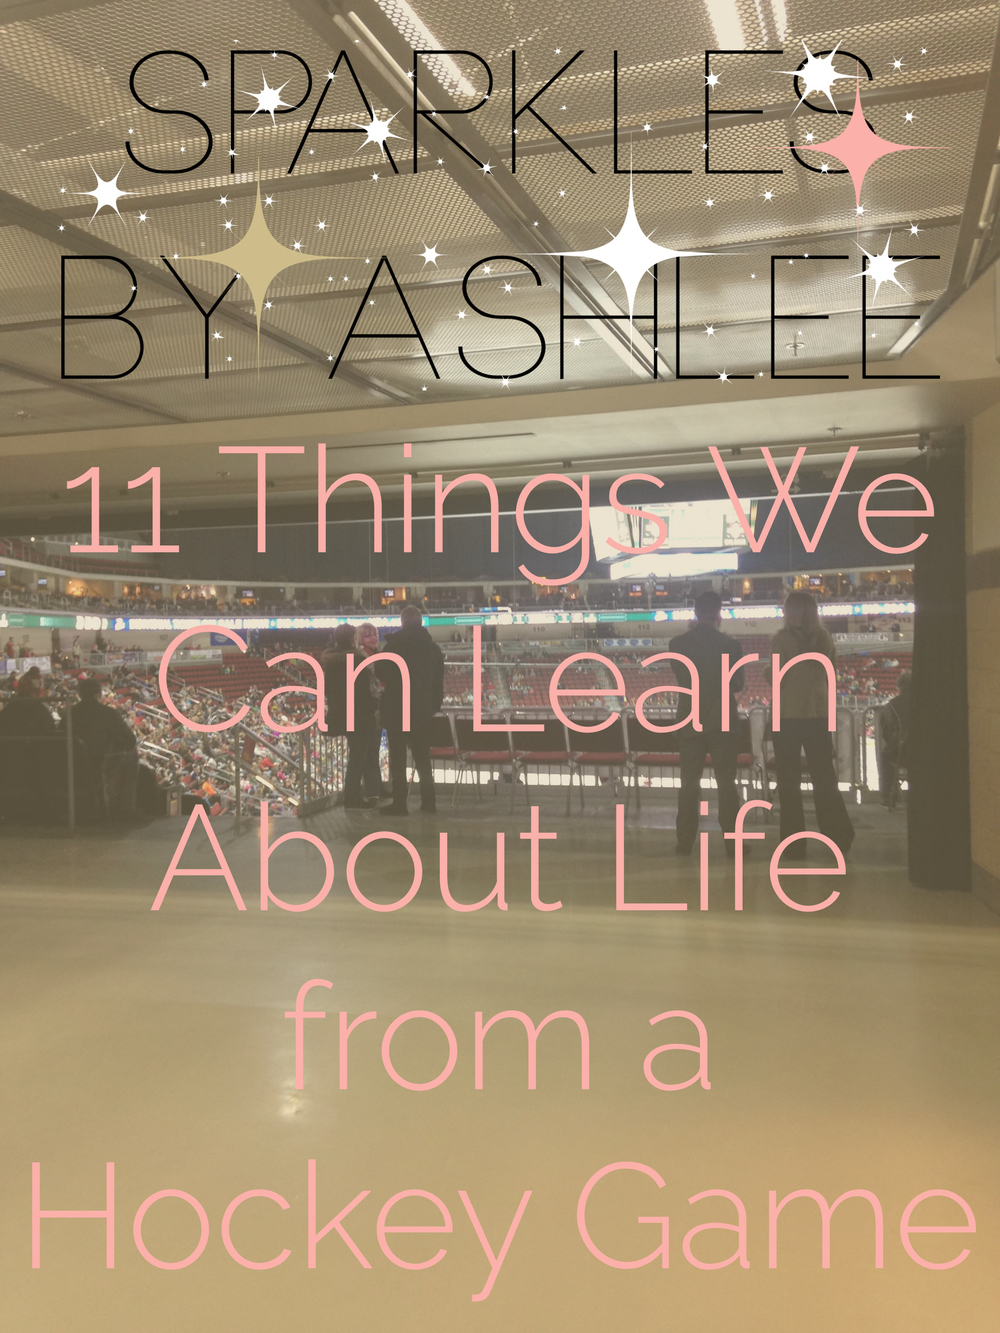 11-Things-We-Can-Learn-About-Life-from-a-Hockey-Game-Sparkles-by-Ashlee.jpg